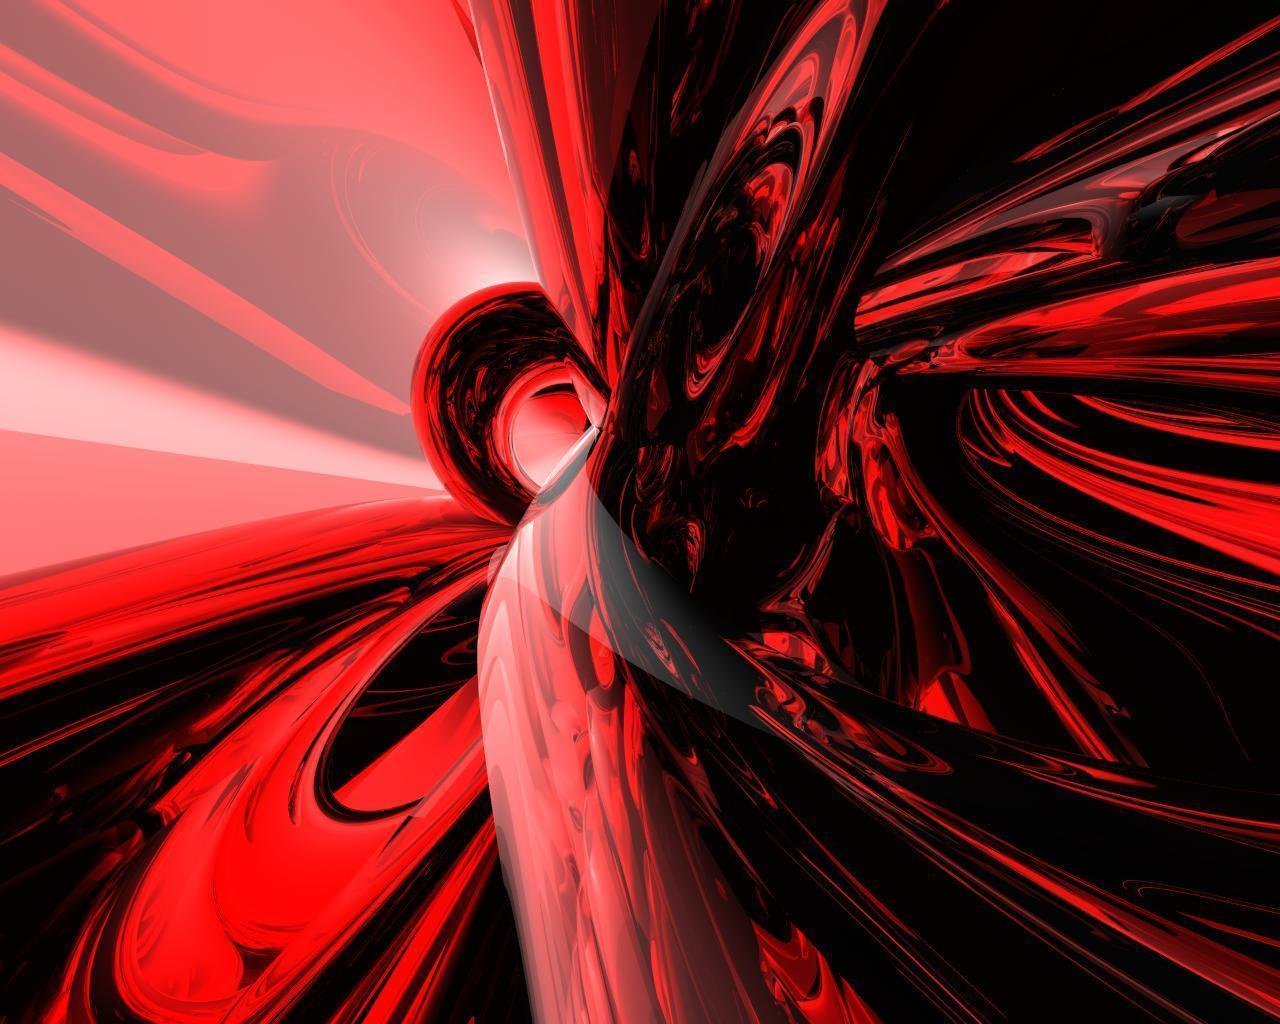 Black And Red Abstract Wallpapers 1280x1024